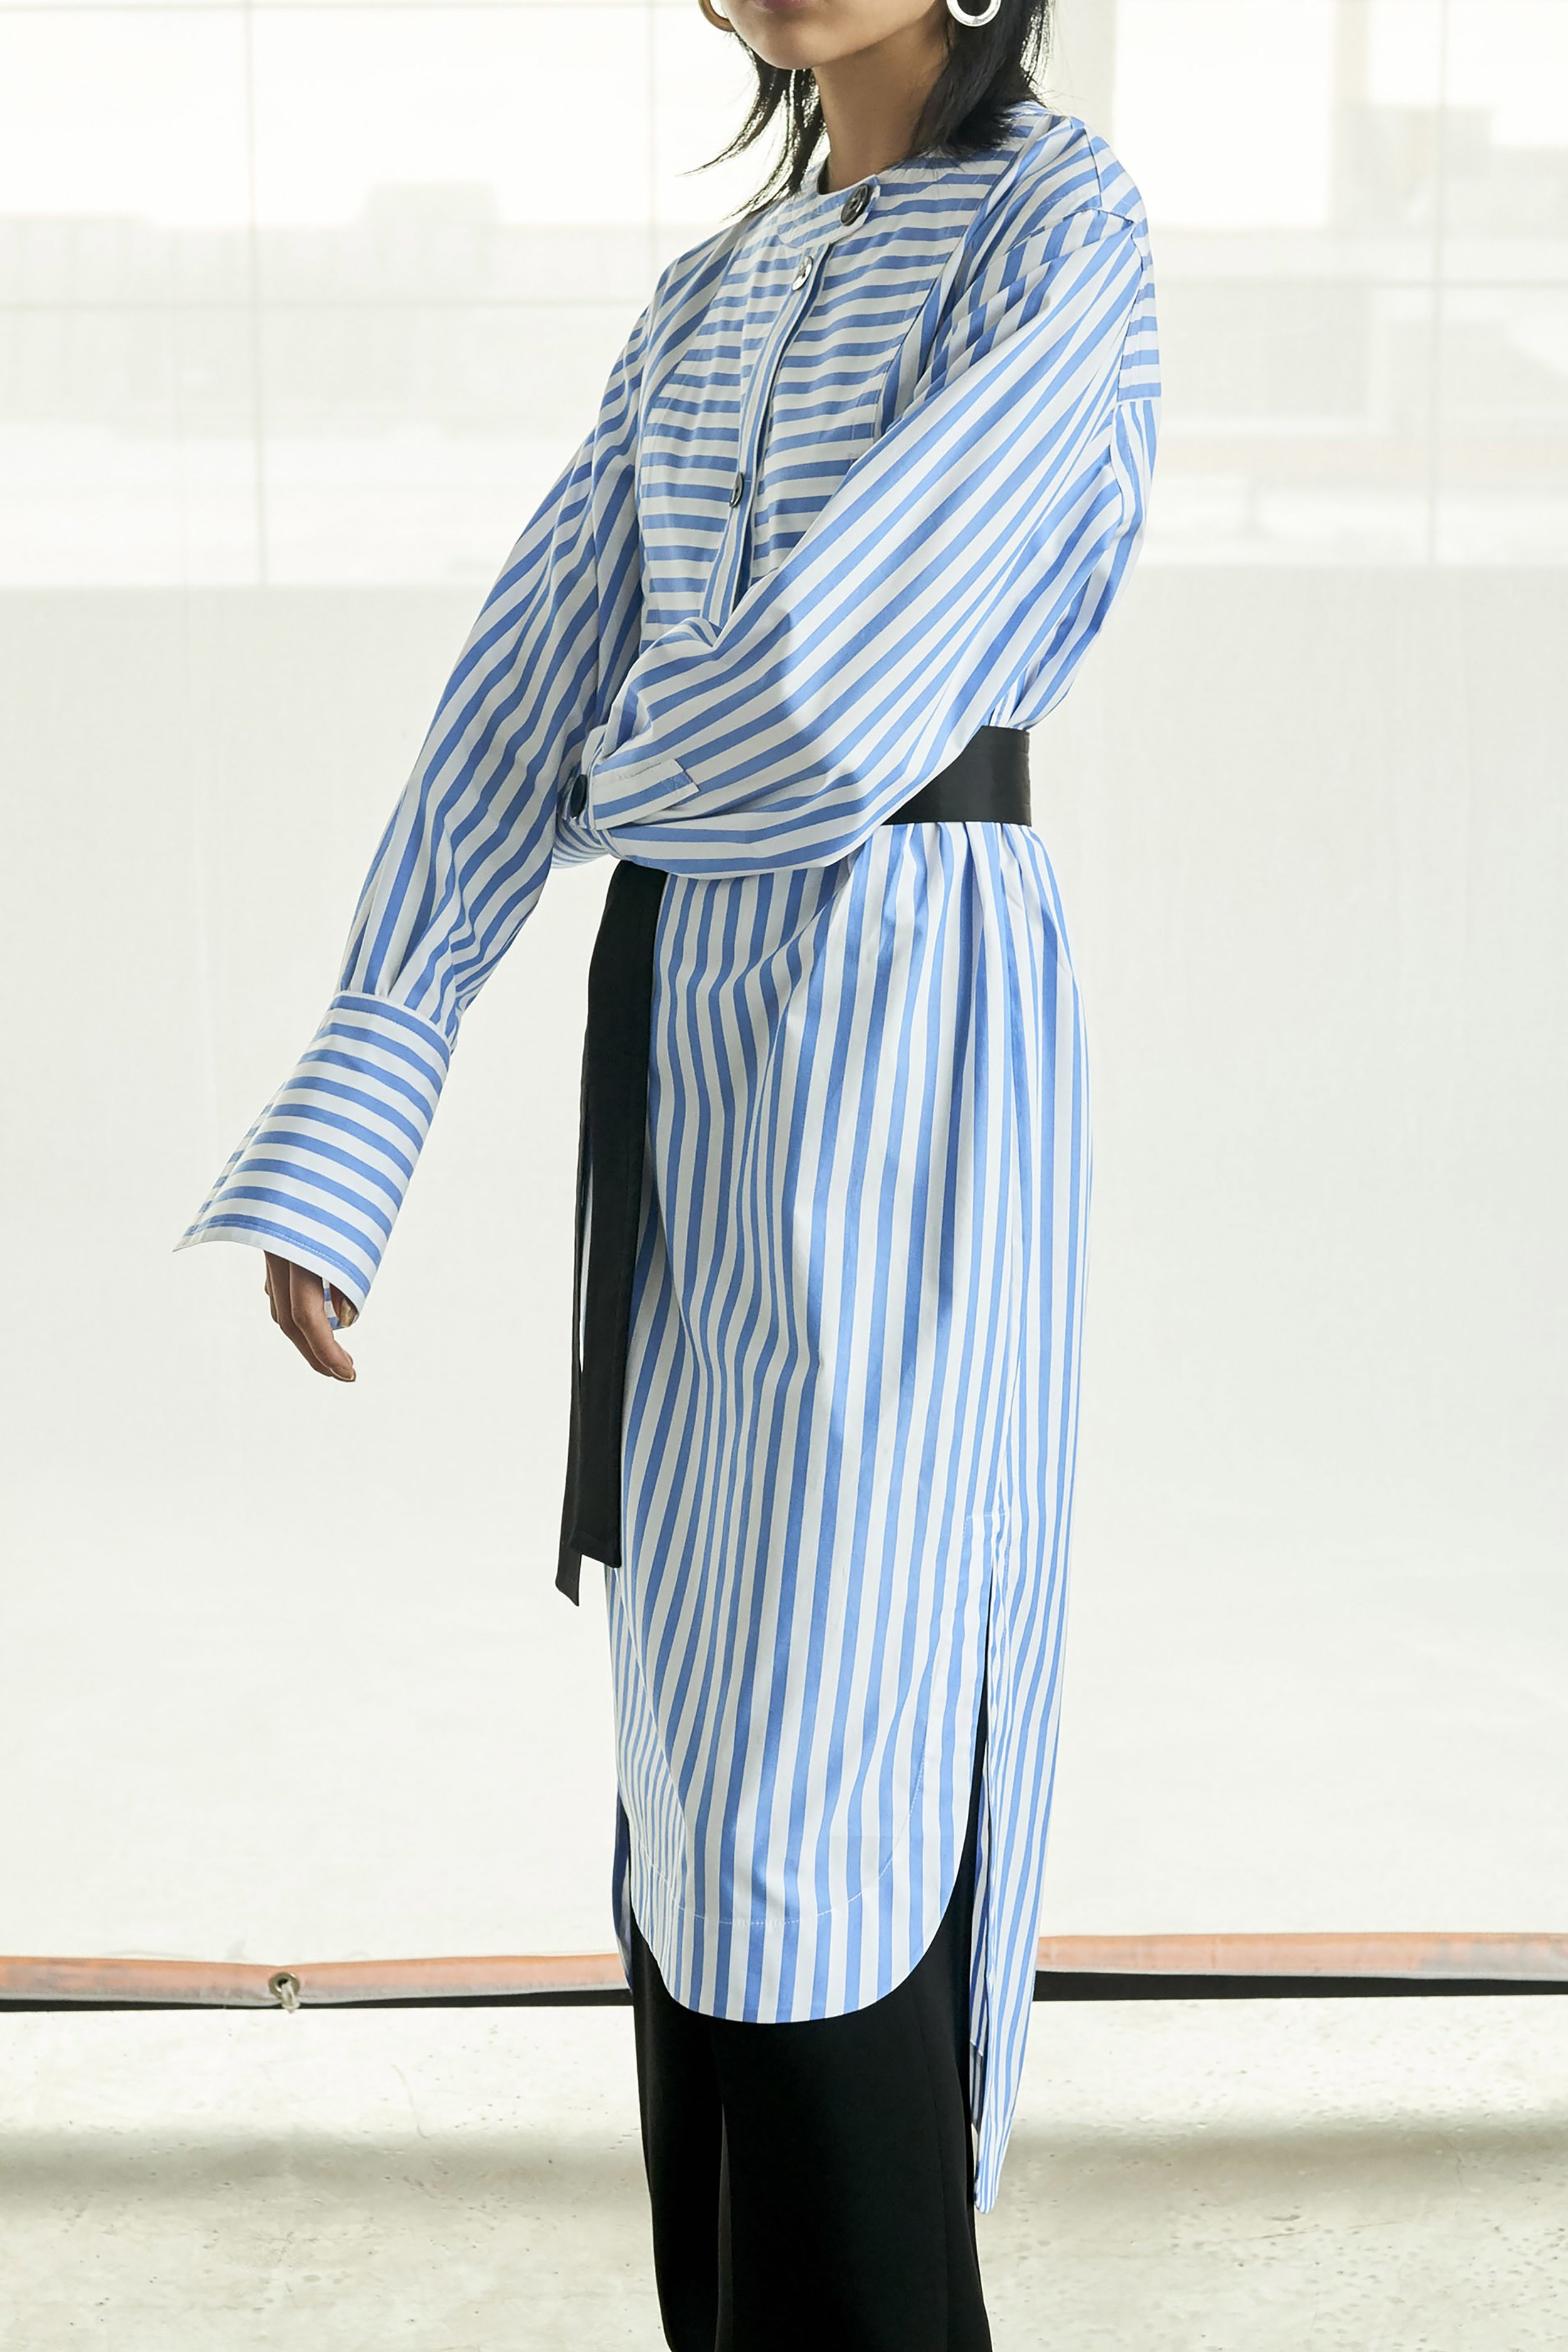 00001-yigal-azrouel-new-york-pre-fall-19.jpg